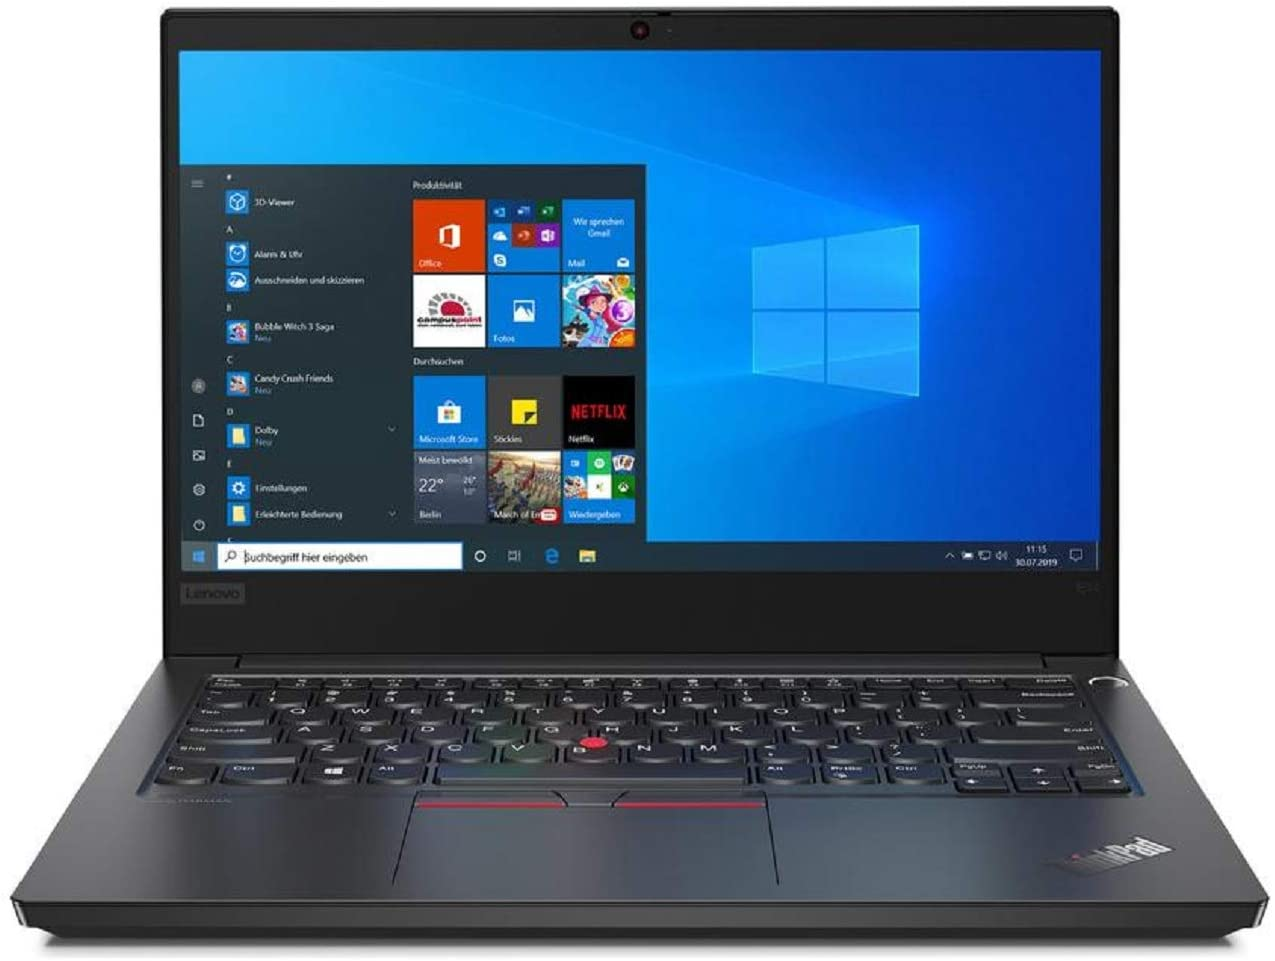 "OEM Lenovo ThinkPad E14 14"" FHD Display 1920x1080 IPS, Intel Quad Core i7-10510U, 32GB RAM, 1TB SSD, W10P, Business Laptop"